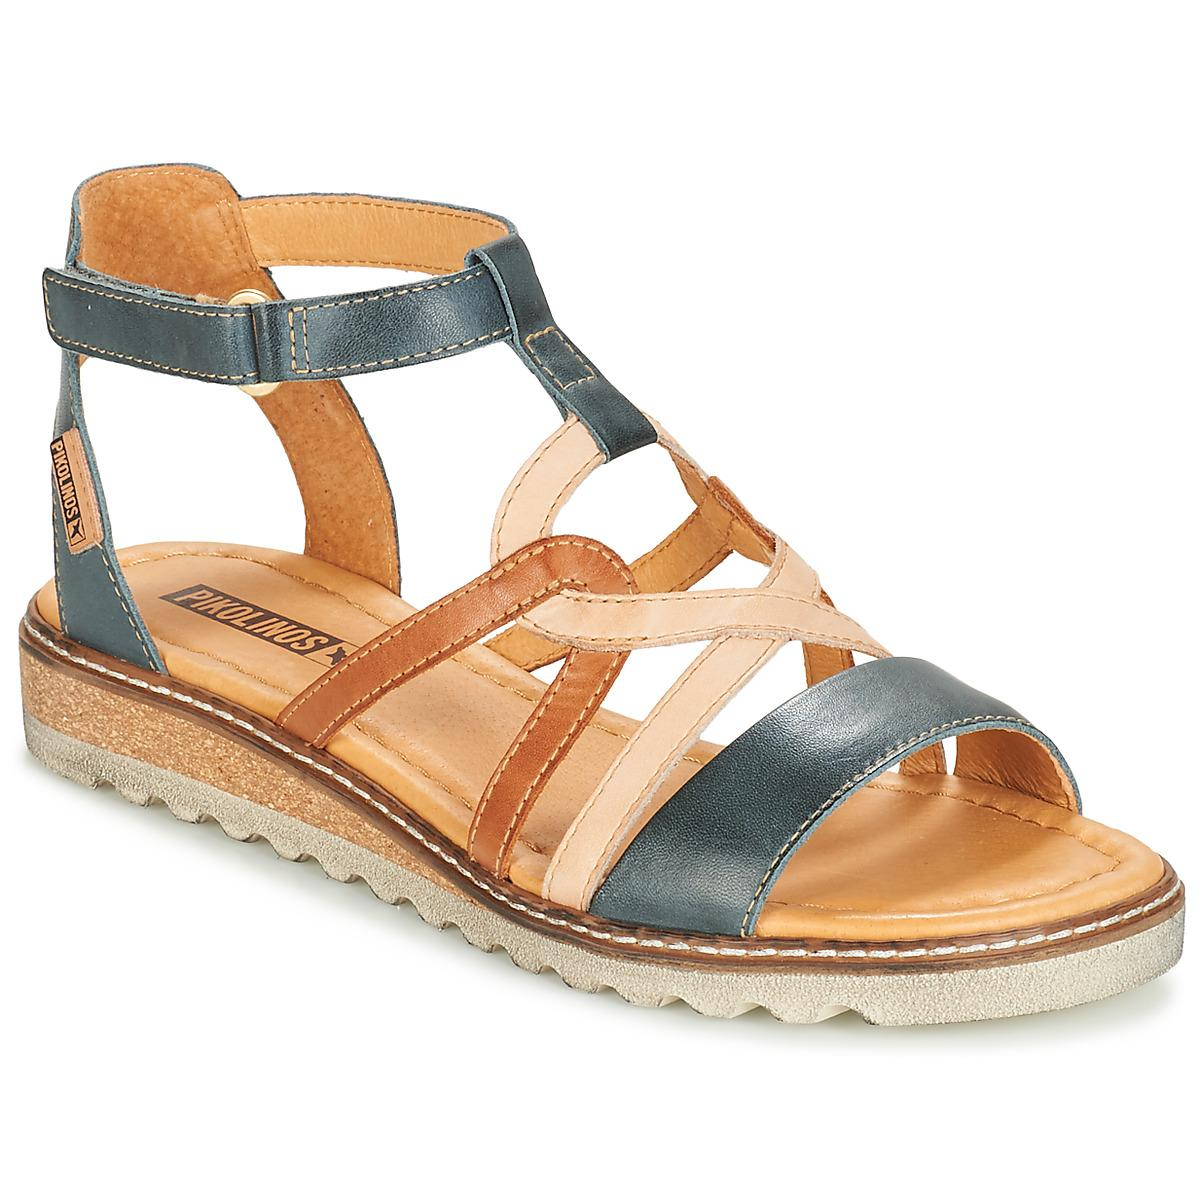 8608e9200d4f Pikolinos - Alcudia W1l Women s Sandals In Blue - Lyst. View fullscreen